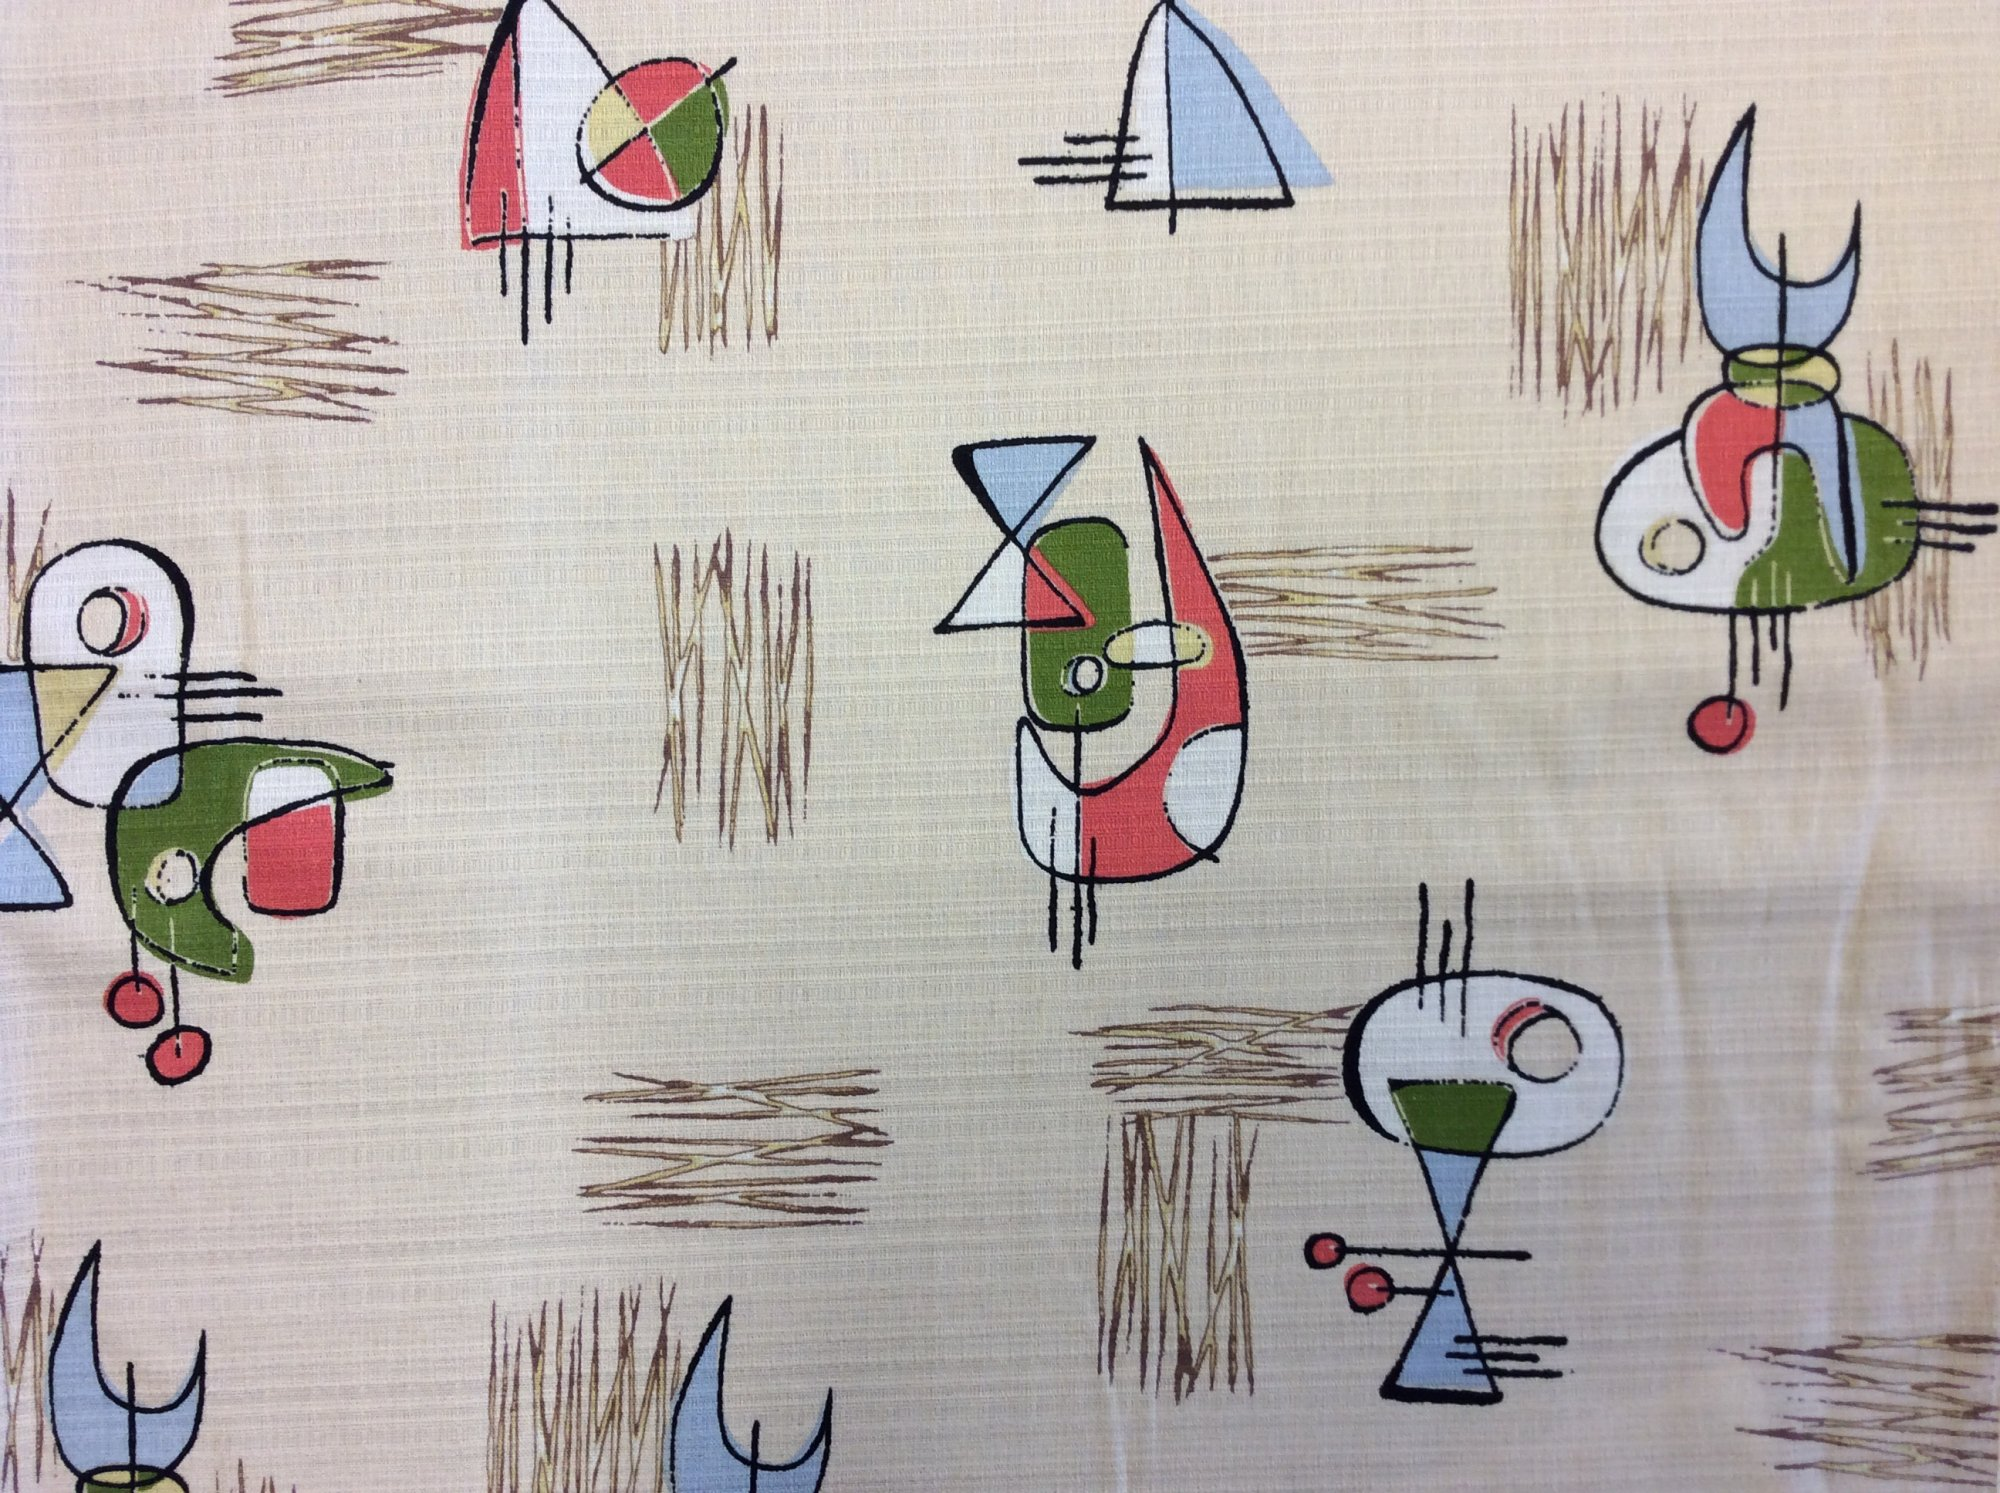 Atomic Retro Barkcloth Boomerang Sputnik MCM Mid Century Modern Slubby Texture Home Dec Cotton Fabric NT40